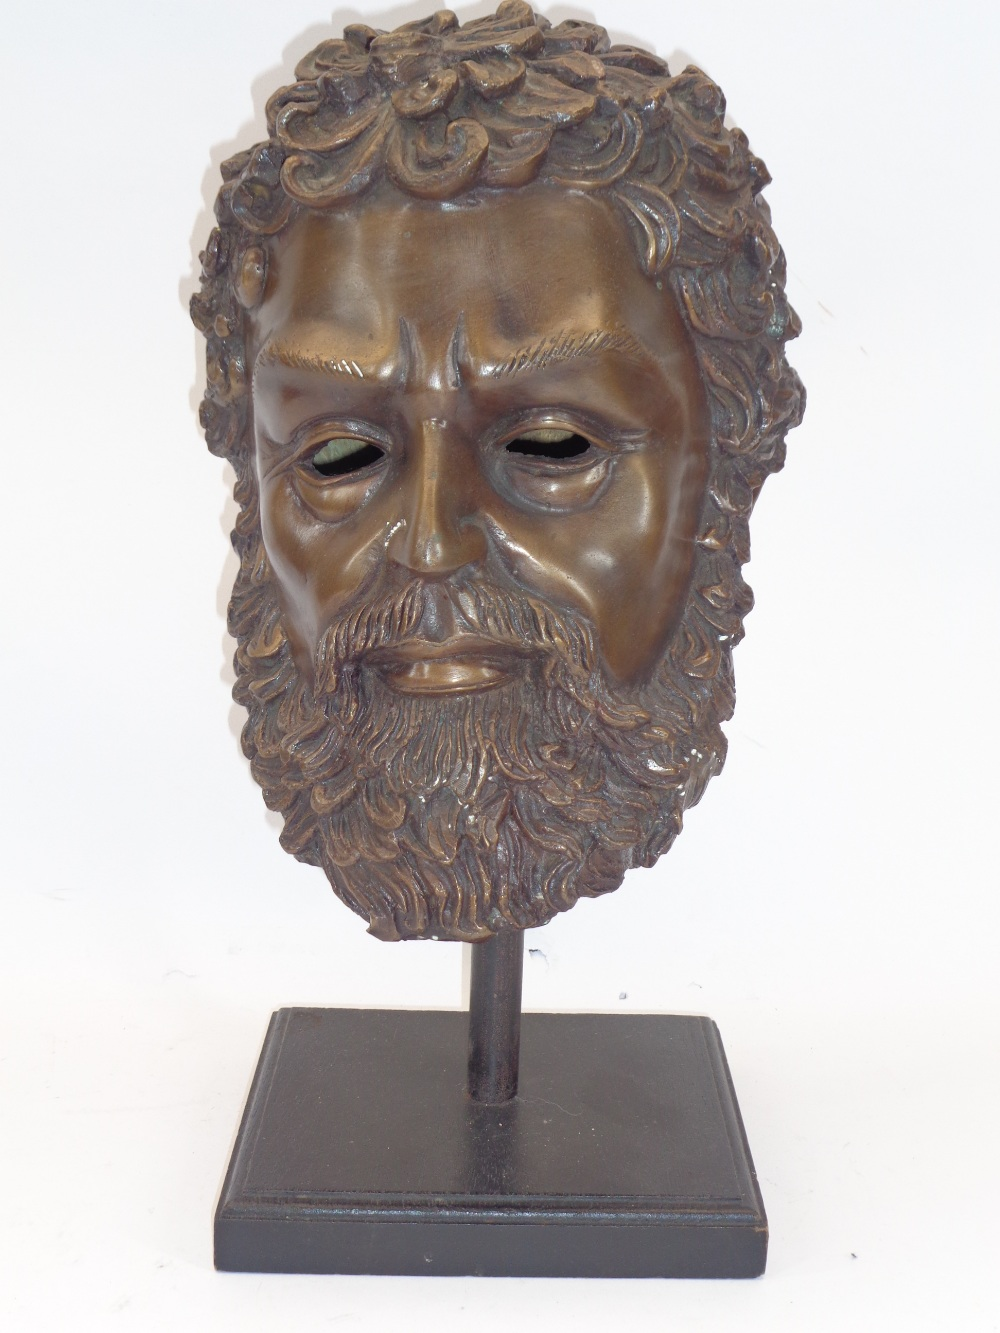 REPRODUCTION BRONZE ANTIQUITIES STYLE HEAD - a bearded man mounted on a wooden base, 46cms H